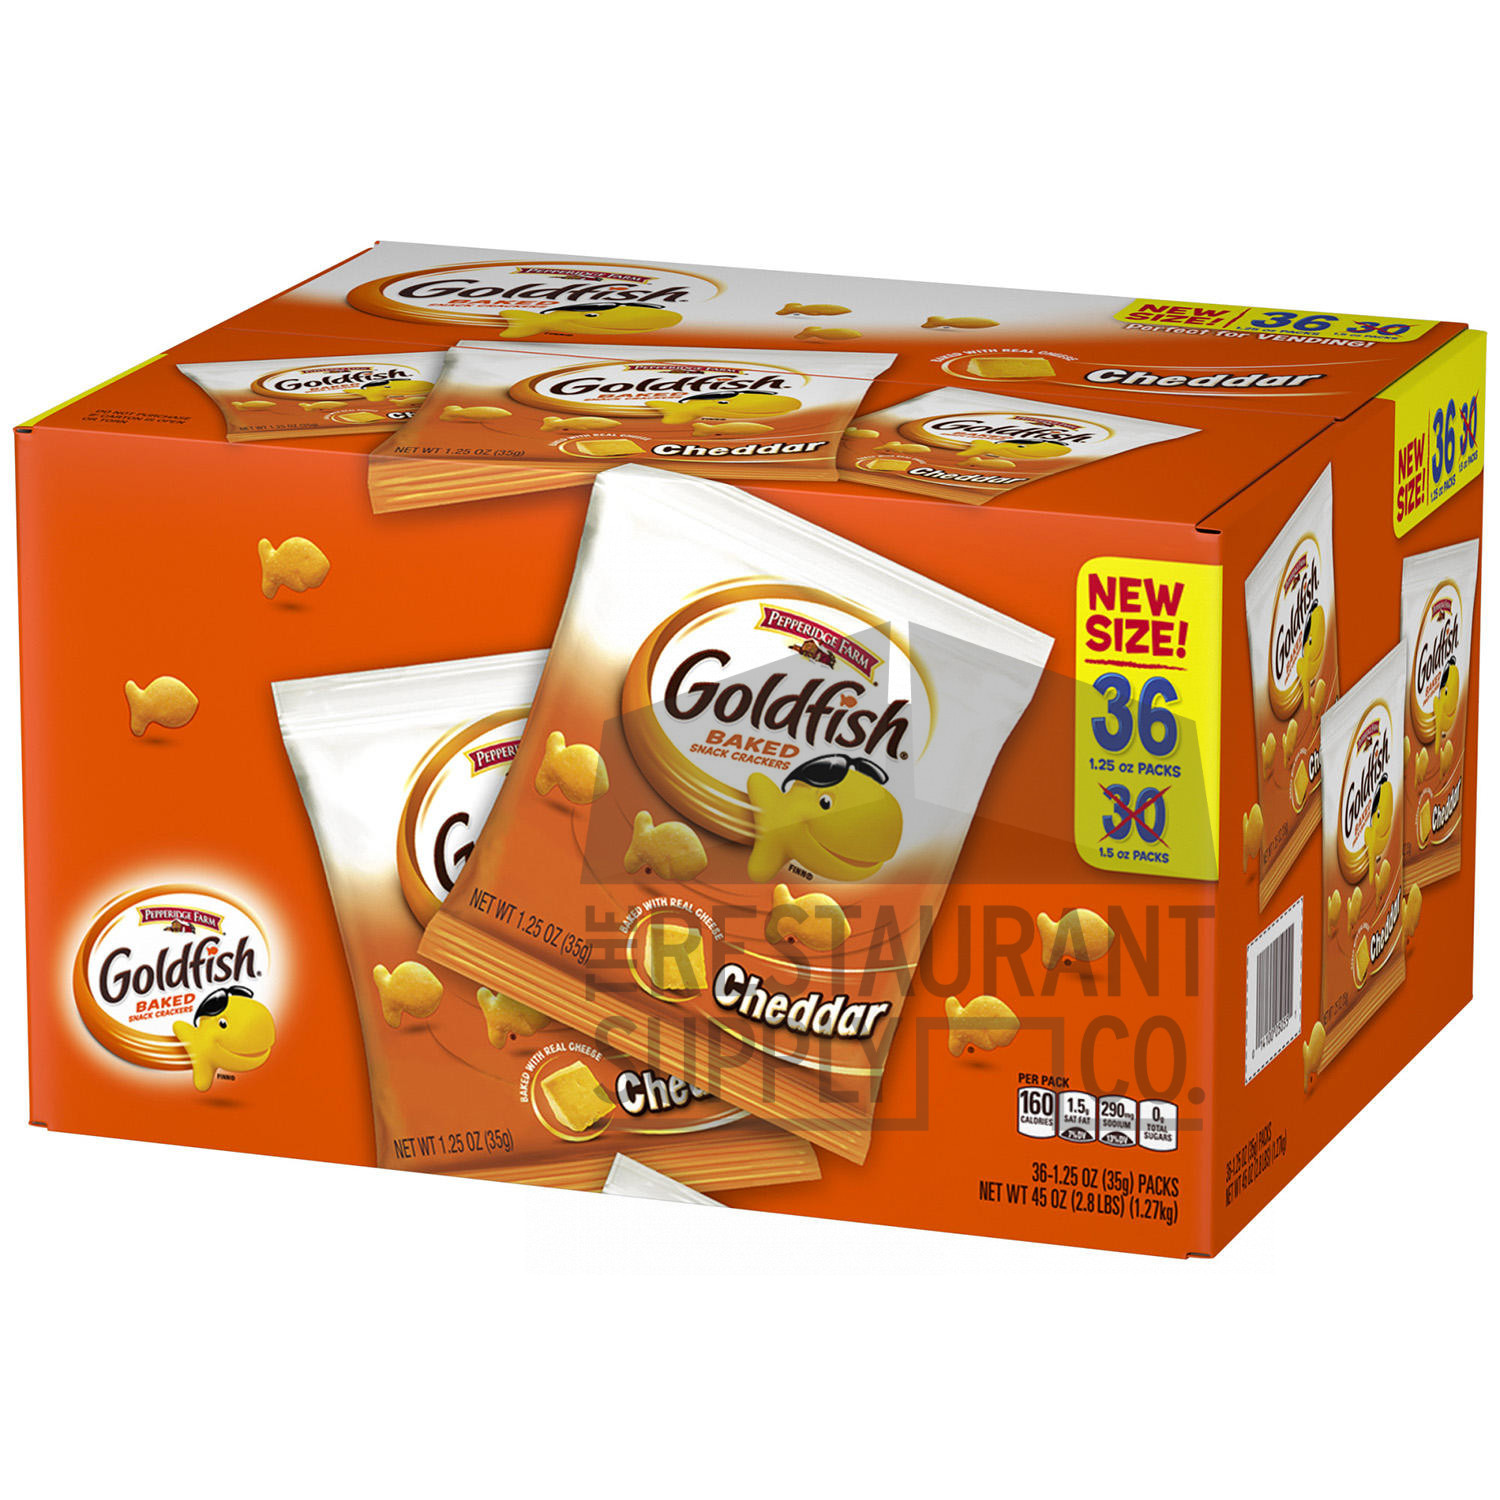 Goldfish Cheddar Crackers 36ct